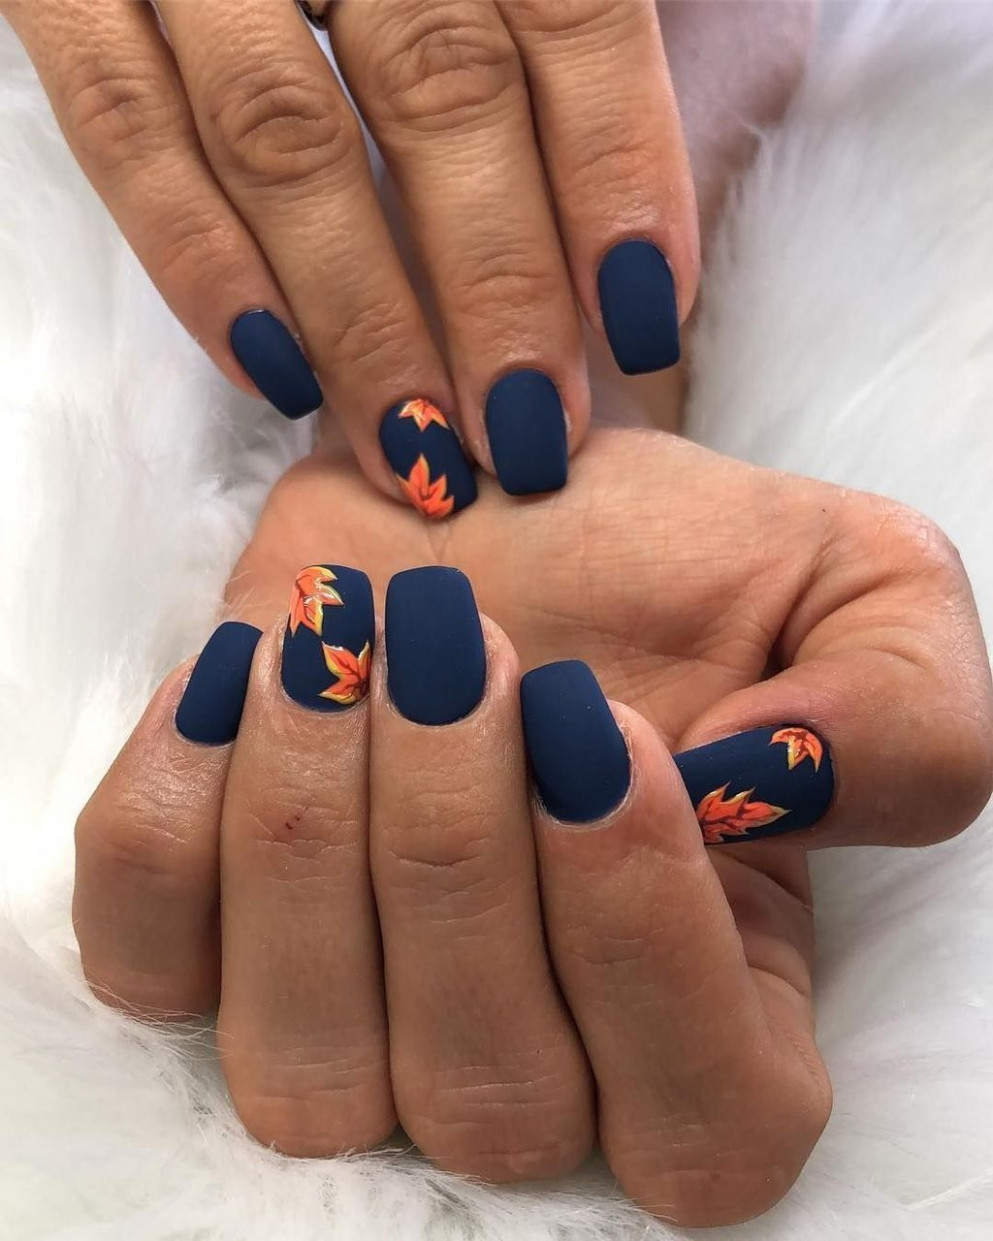 10 Outstanding Fall Nails Designs Ideas That Make You Want To Copy